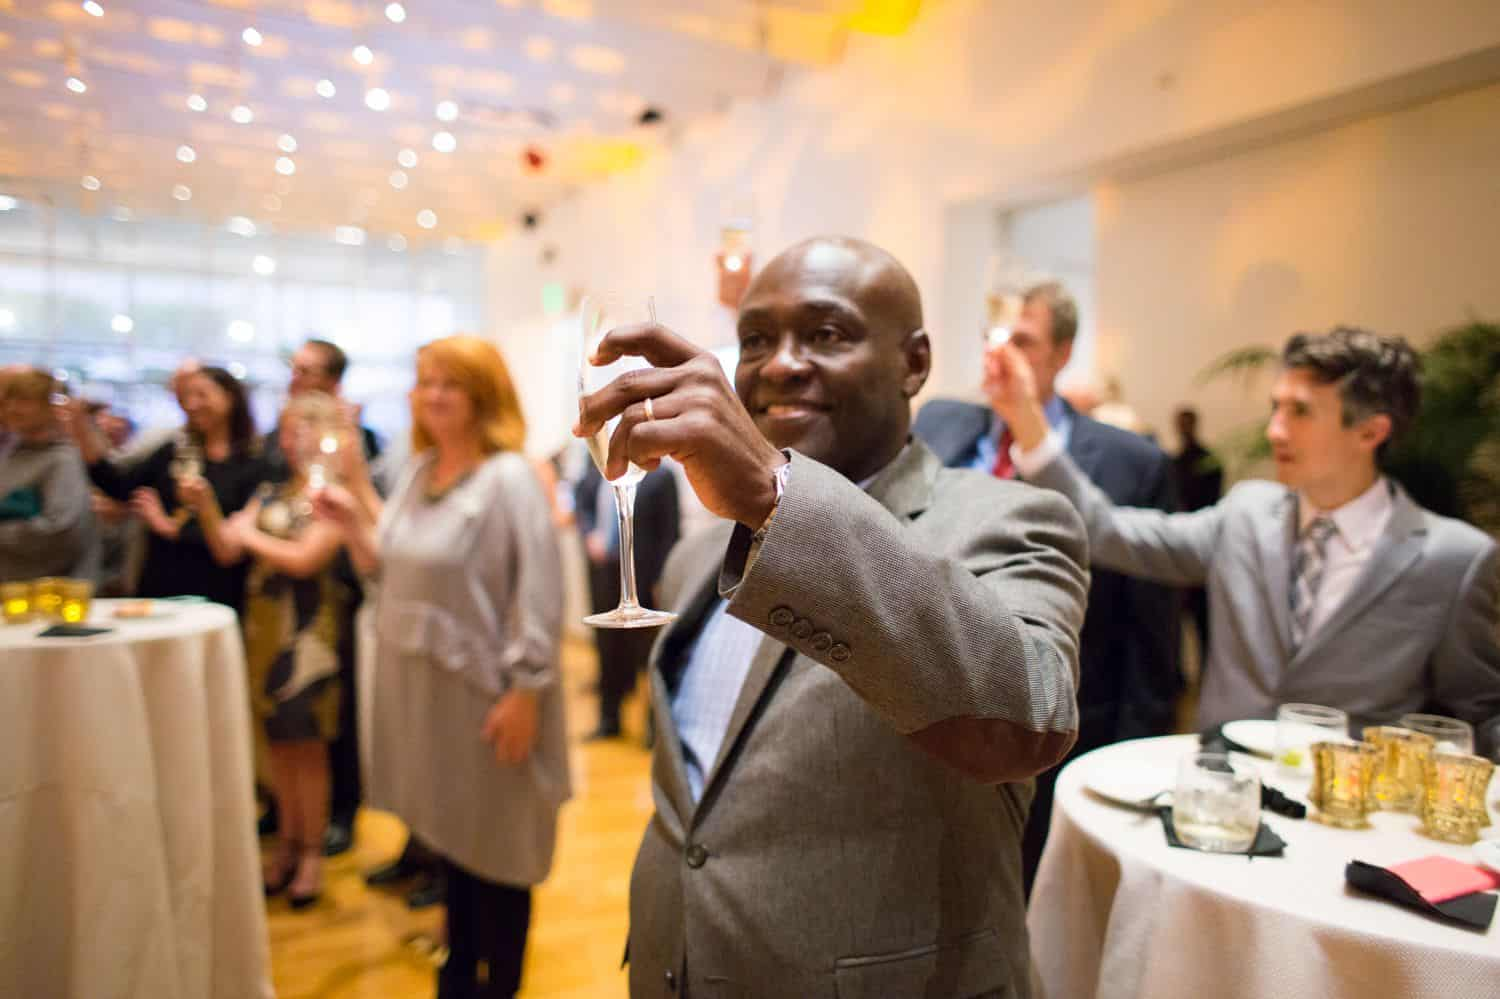 Build Your Dream Photography Business on a Budget: Man gives champagne toast at business event